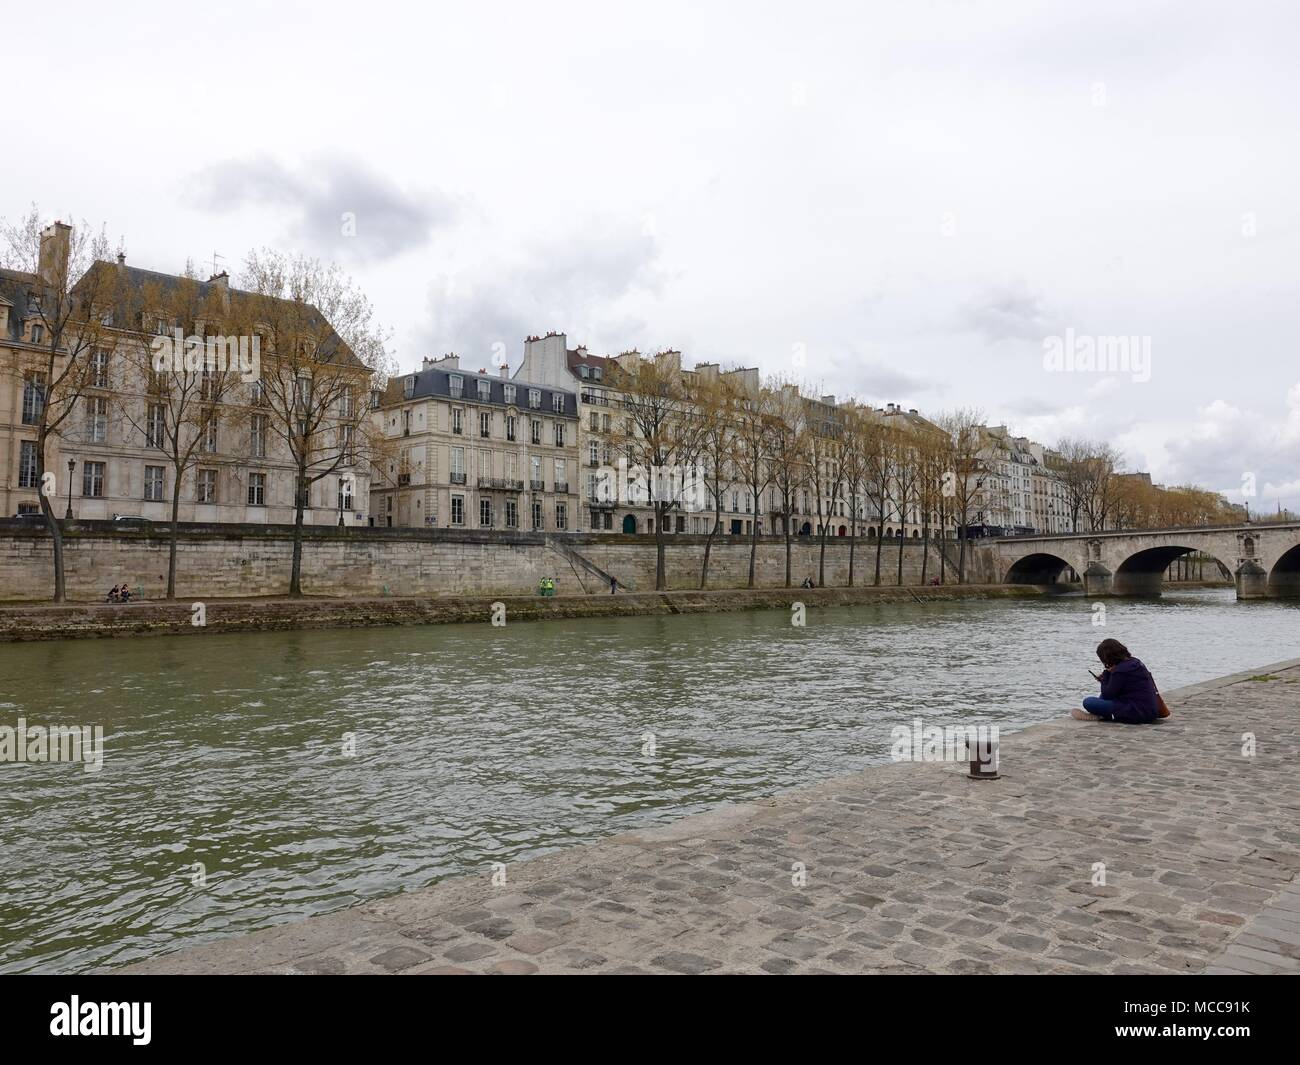 Solitary woman sits along the bank of the Seine River in the Parc Rives de Seine, looking across at Ile Saint-Louis. Paris, France. - Stock Image